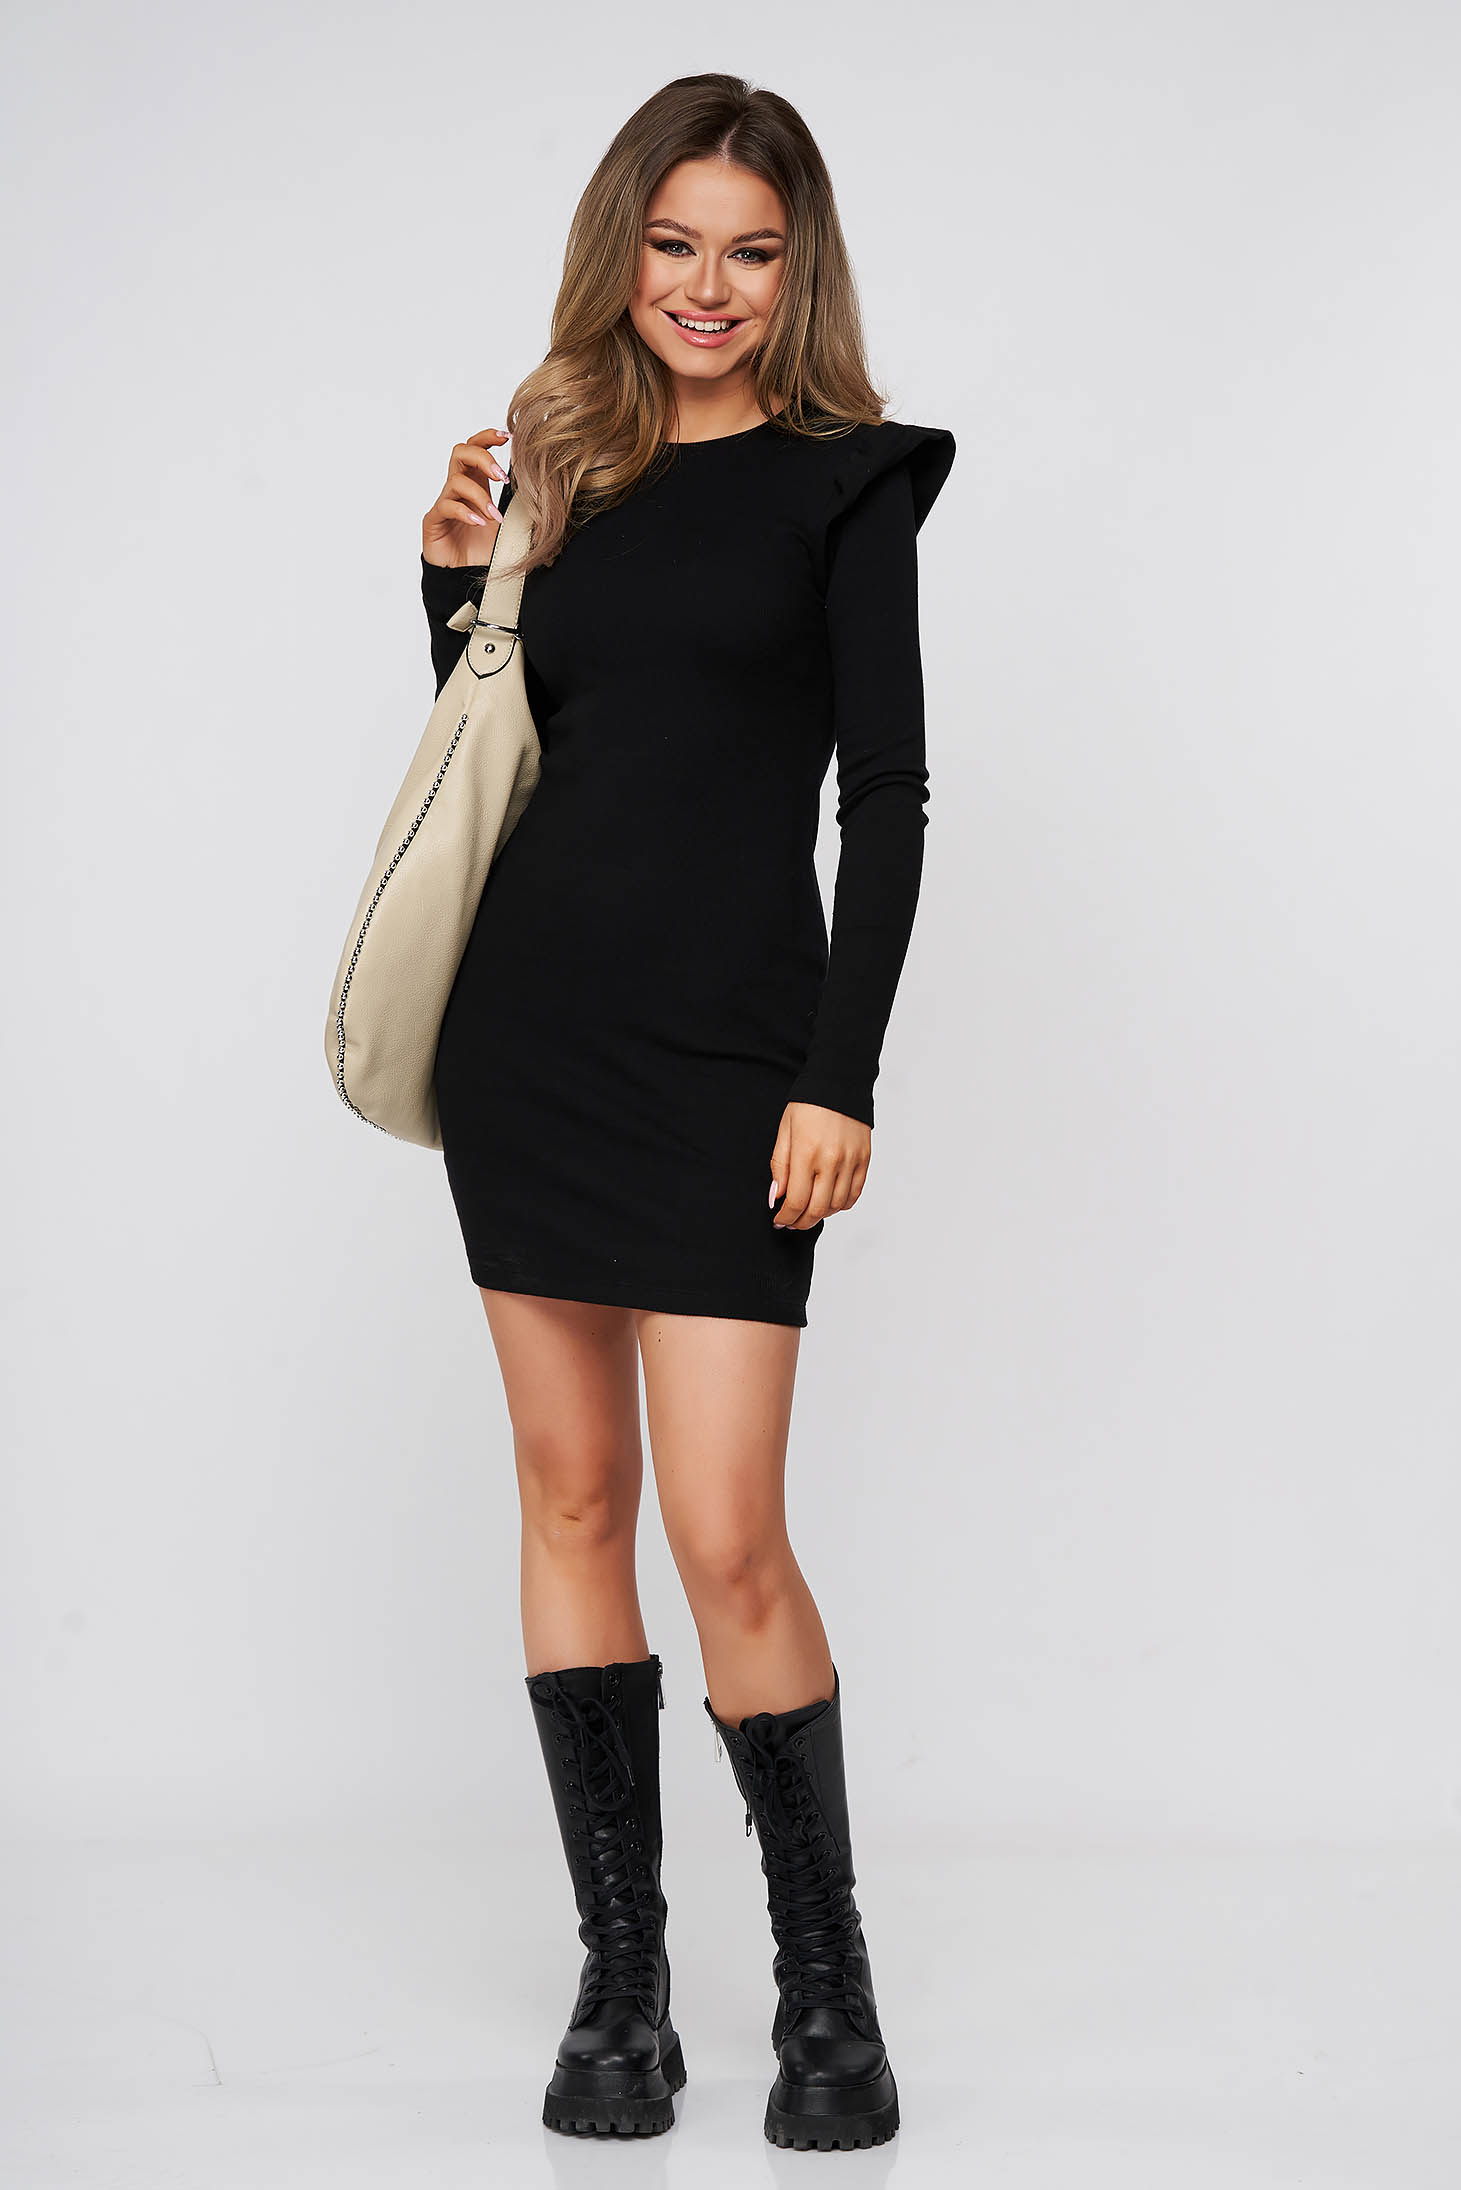 Black dress short cut daily pencil cotton from striped fabric with ruffle details